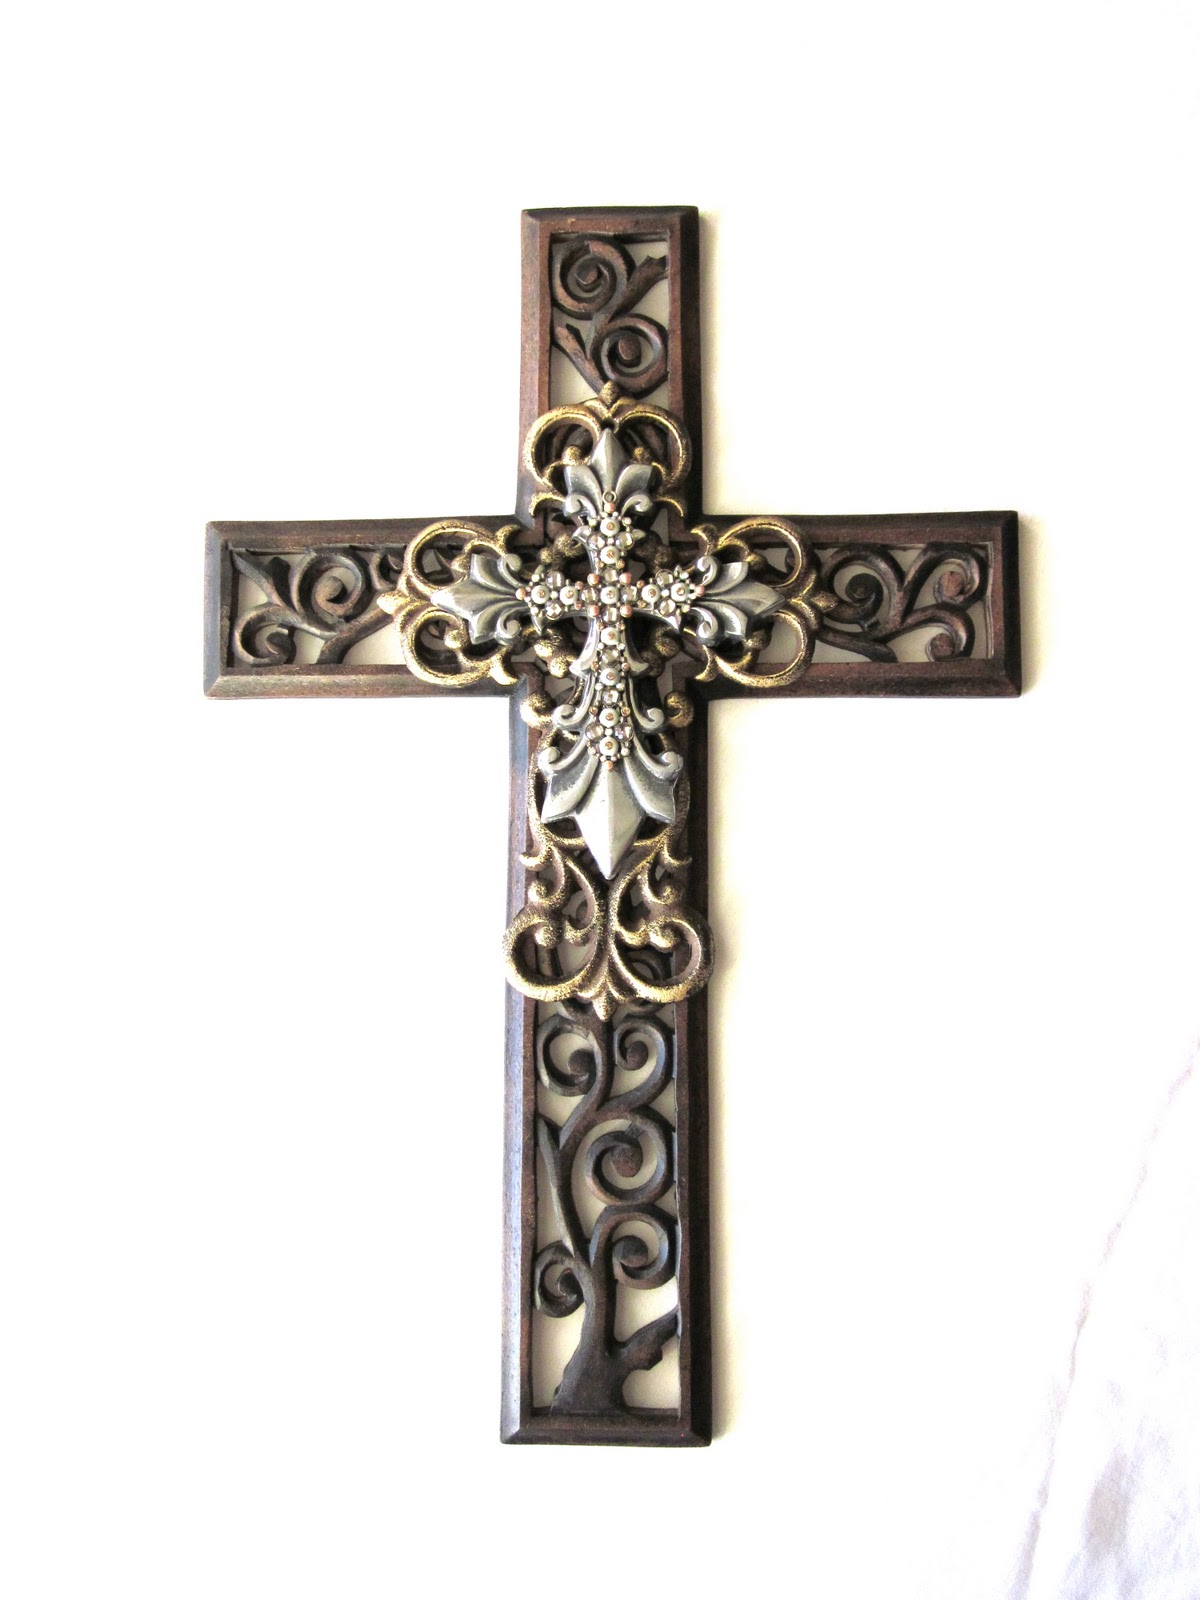 leora lane decor: The Ophelia Wall Cross